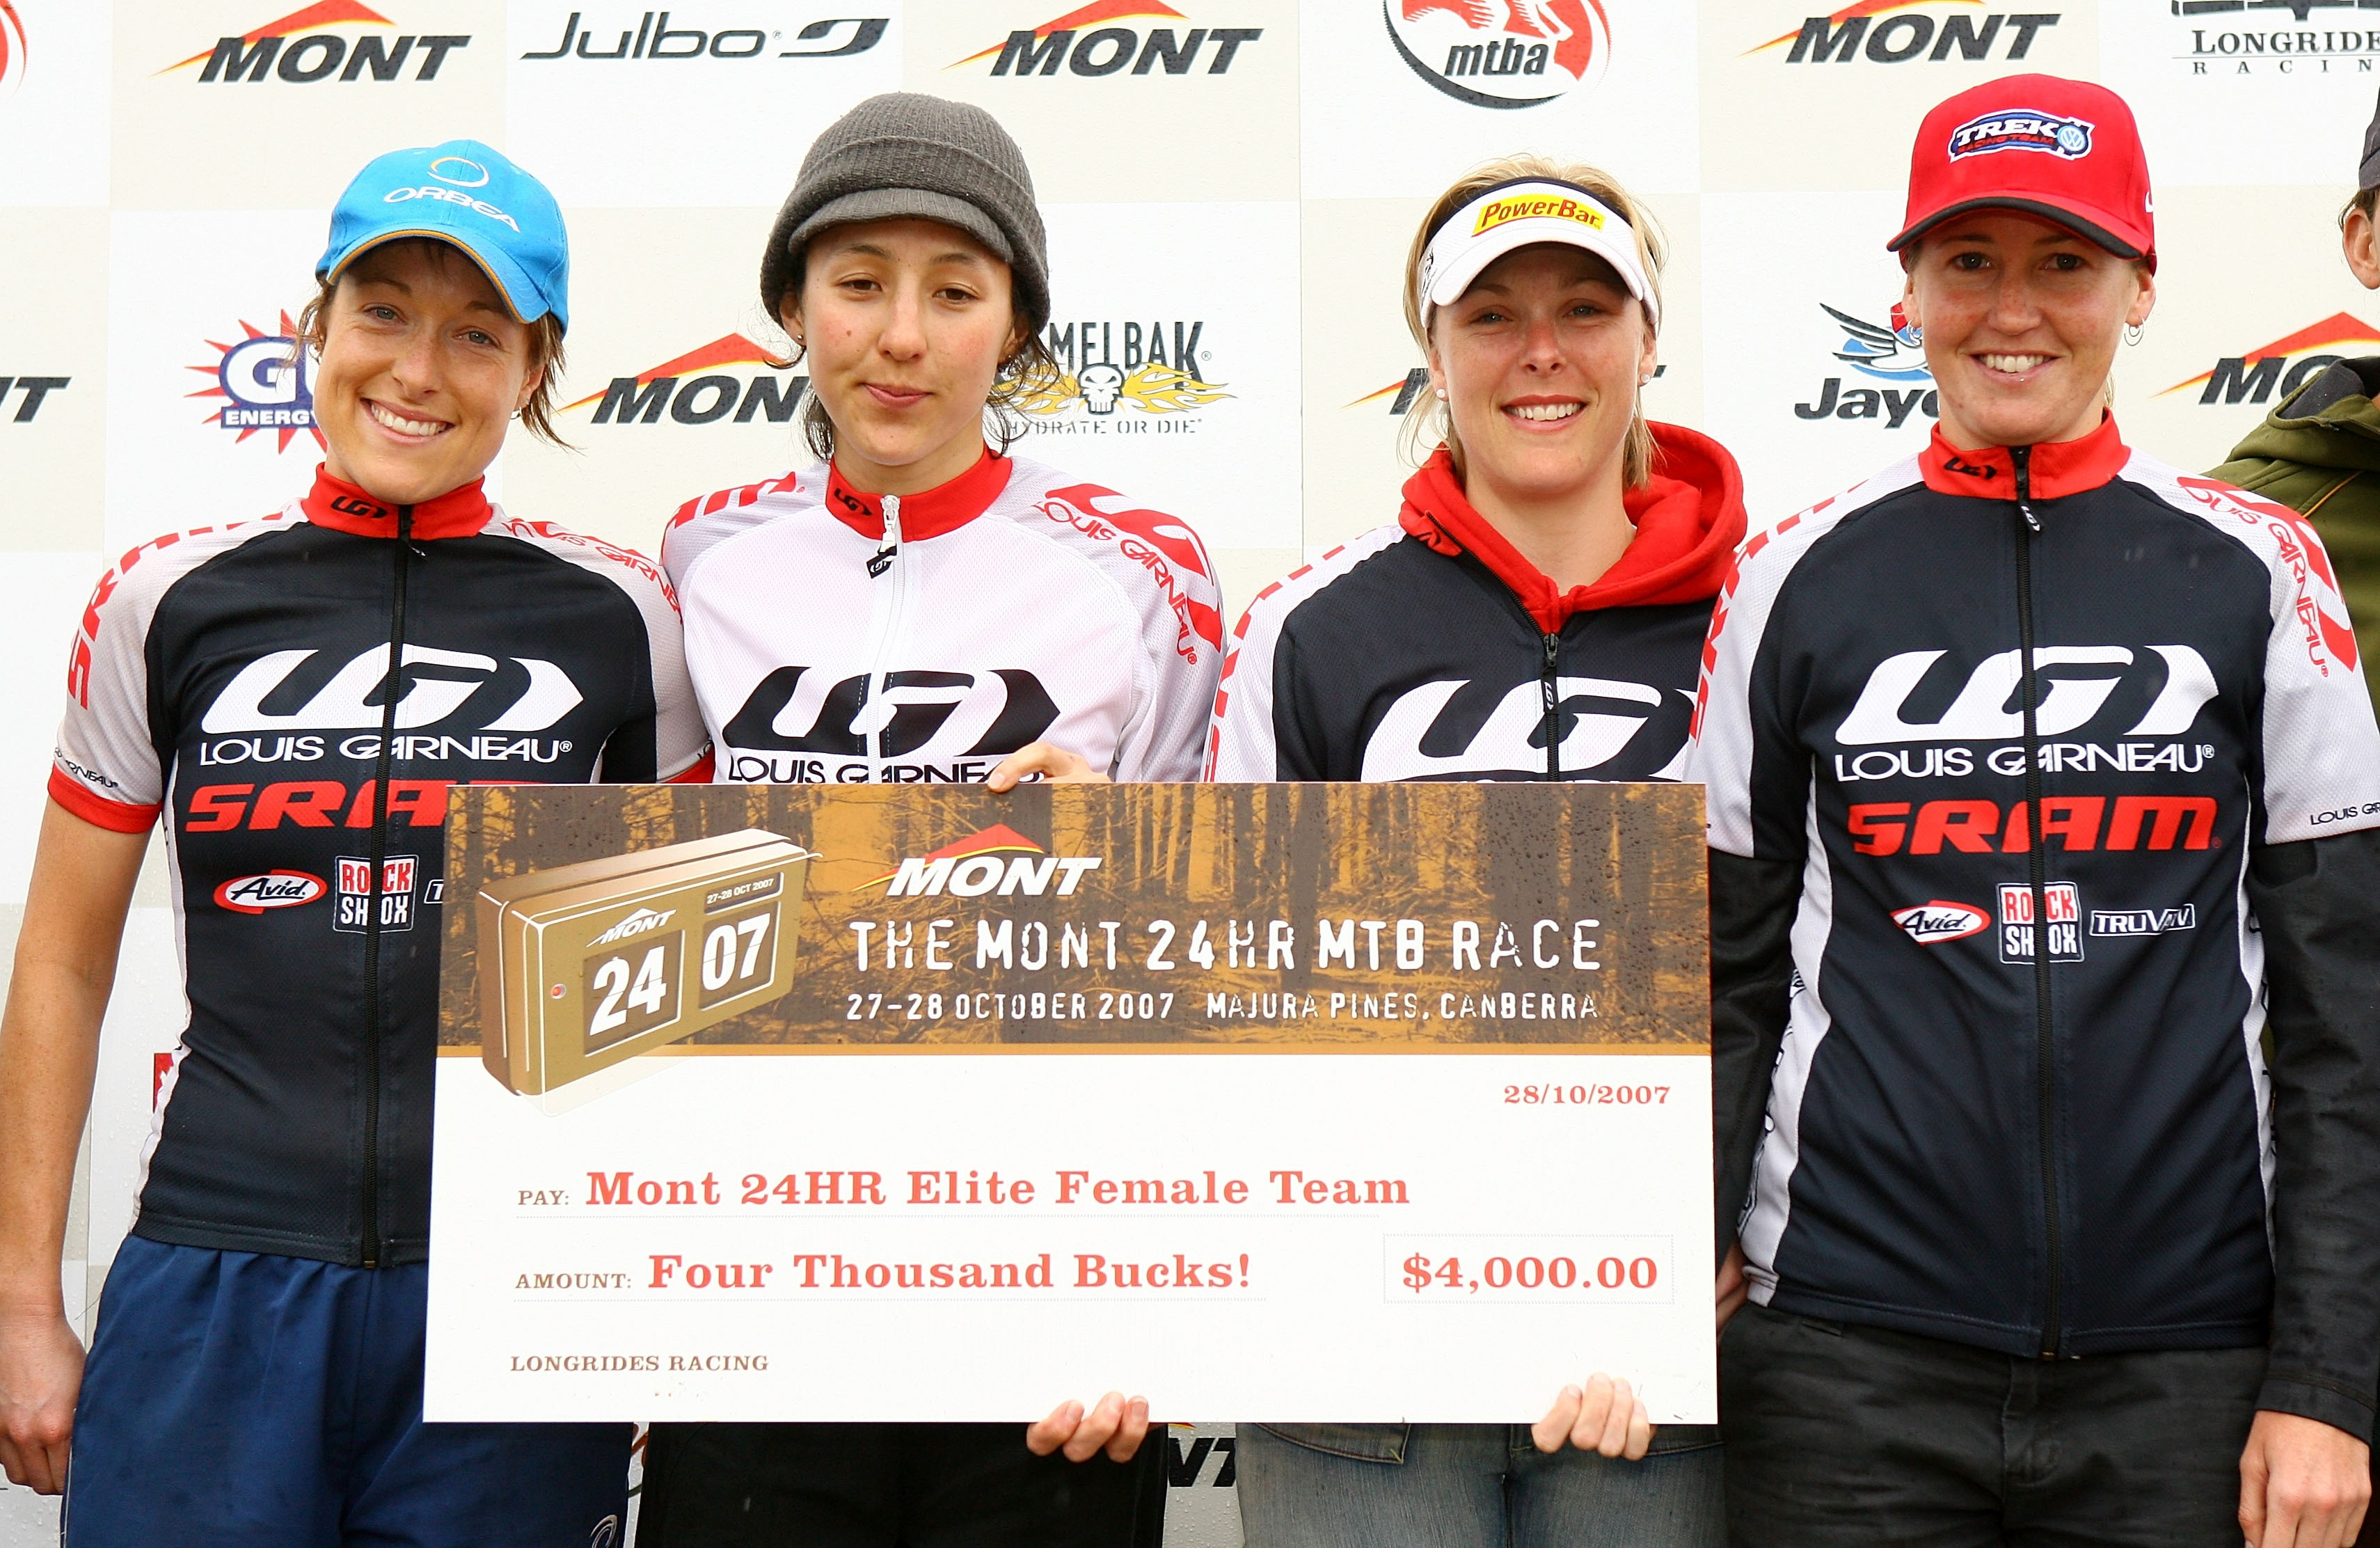 The winning women's elite team, Brazilian Butterfly: Tory Thomas, Rowena Fry, Katherine O'Shea and J